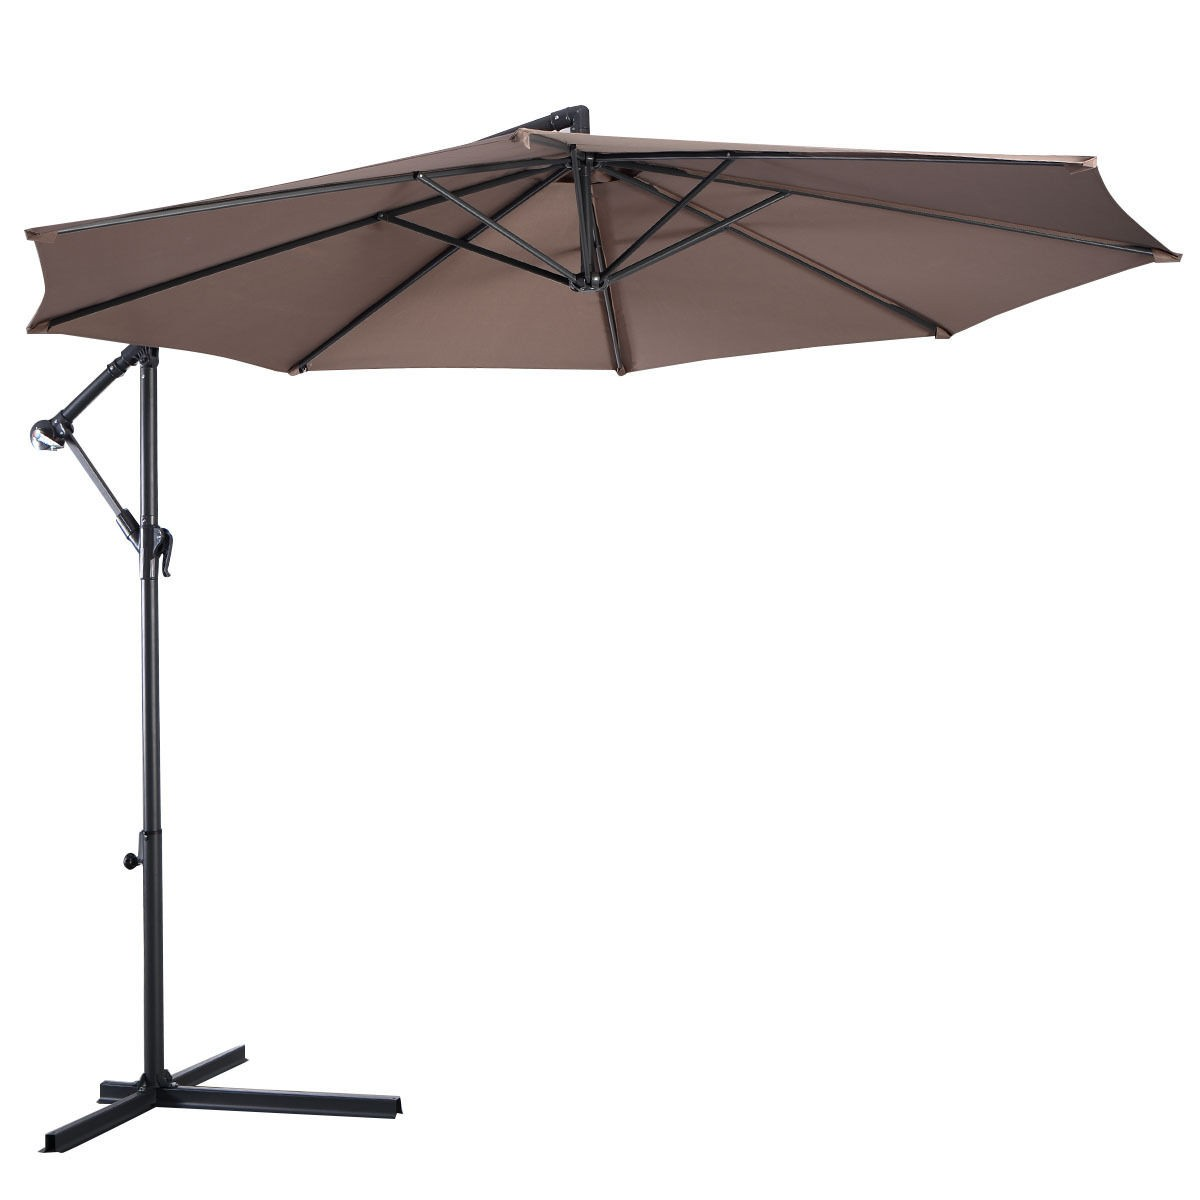 Outdoor Shade Umbrella Goplus 10 39 Hanging Umbrella Patio Sun Shade Offset Outdoor